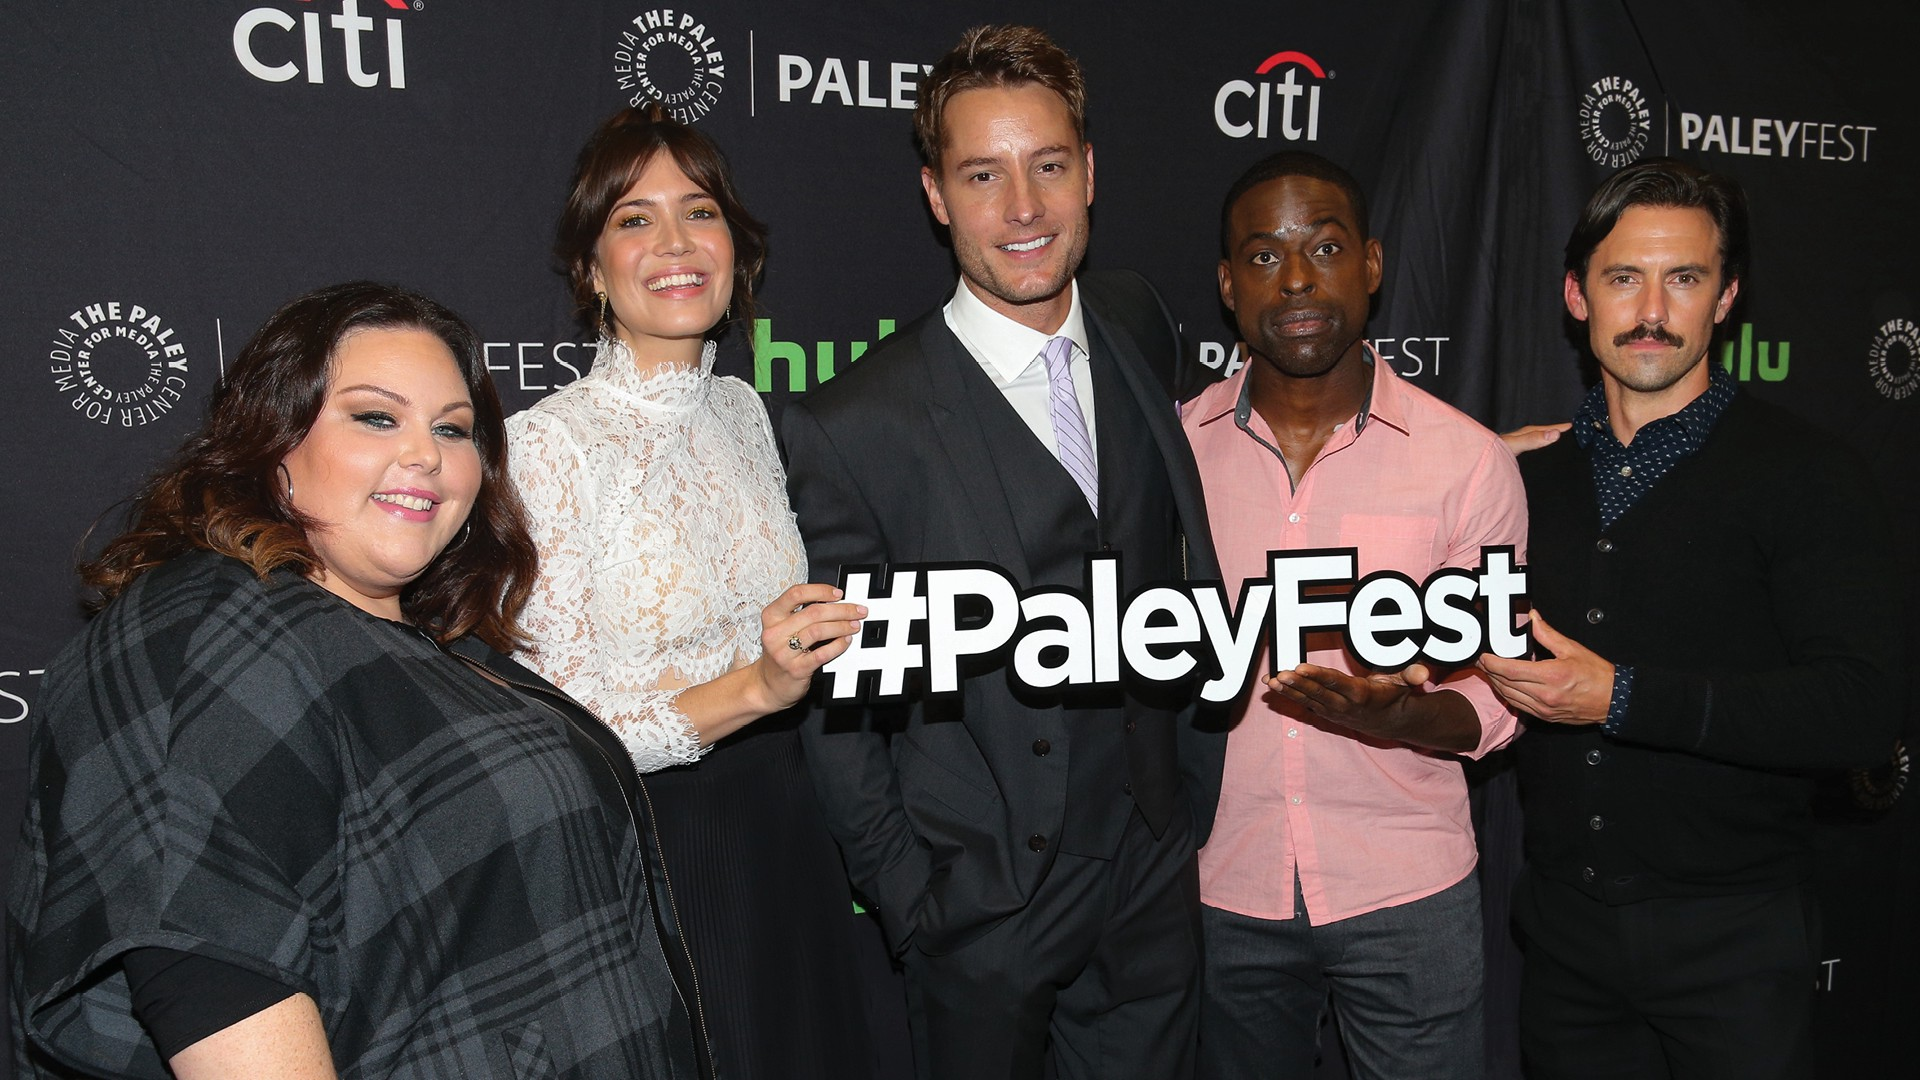 12 this is us cast moments to get you pumped for paleyfest la